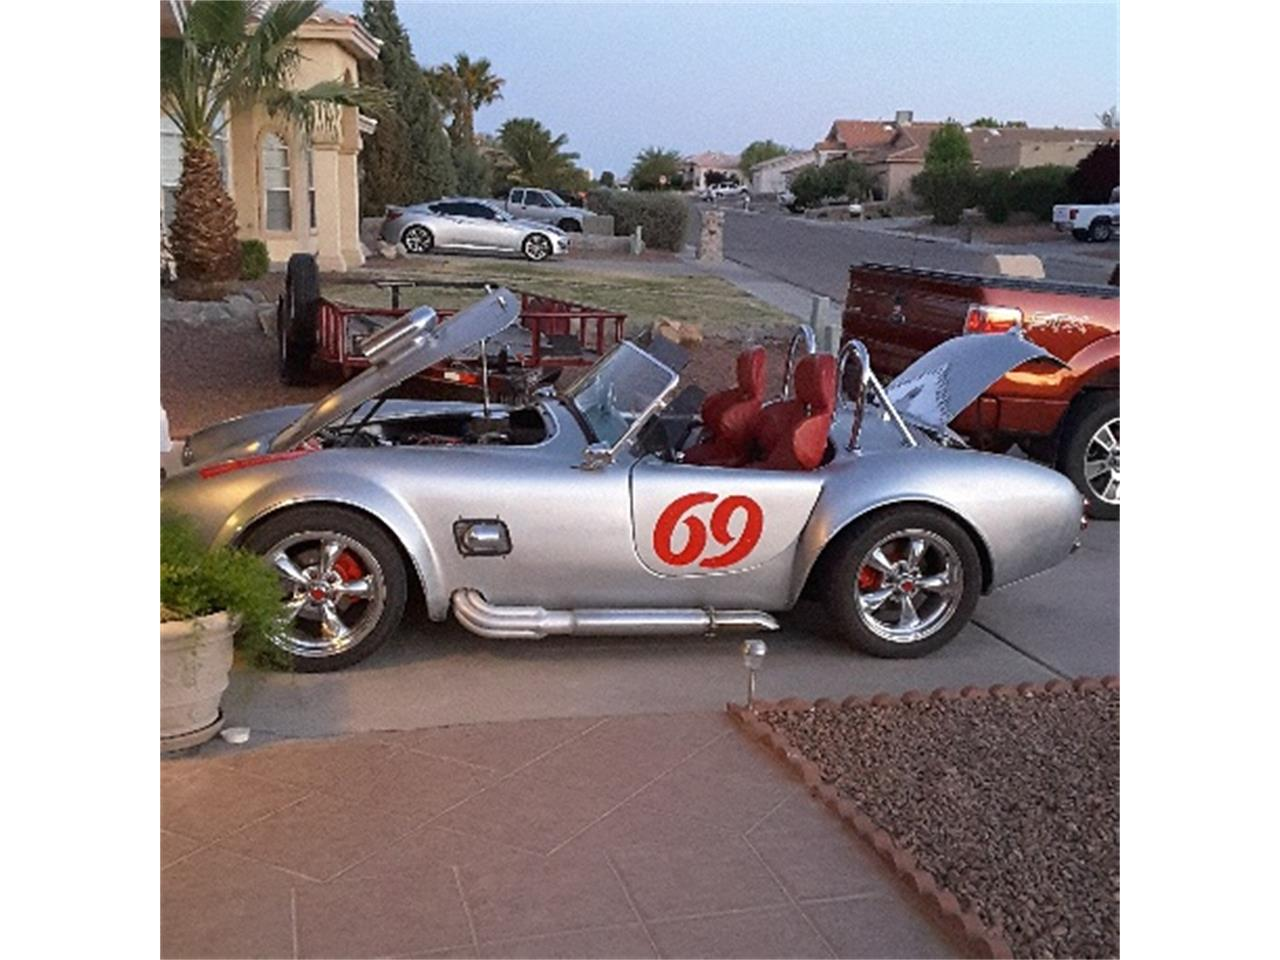 Large Picture of '65 Cobra located in Cantillo Texas - $30,000.00 Offered by a Private Seller - M1ZQ